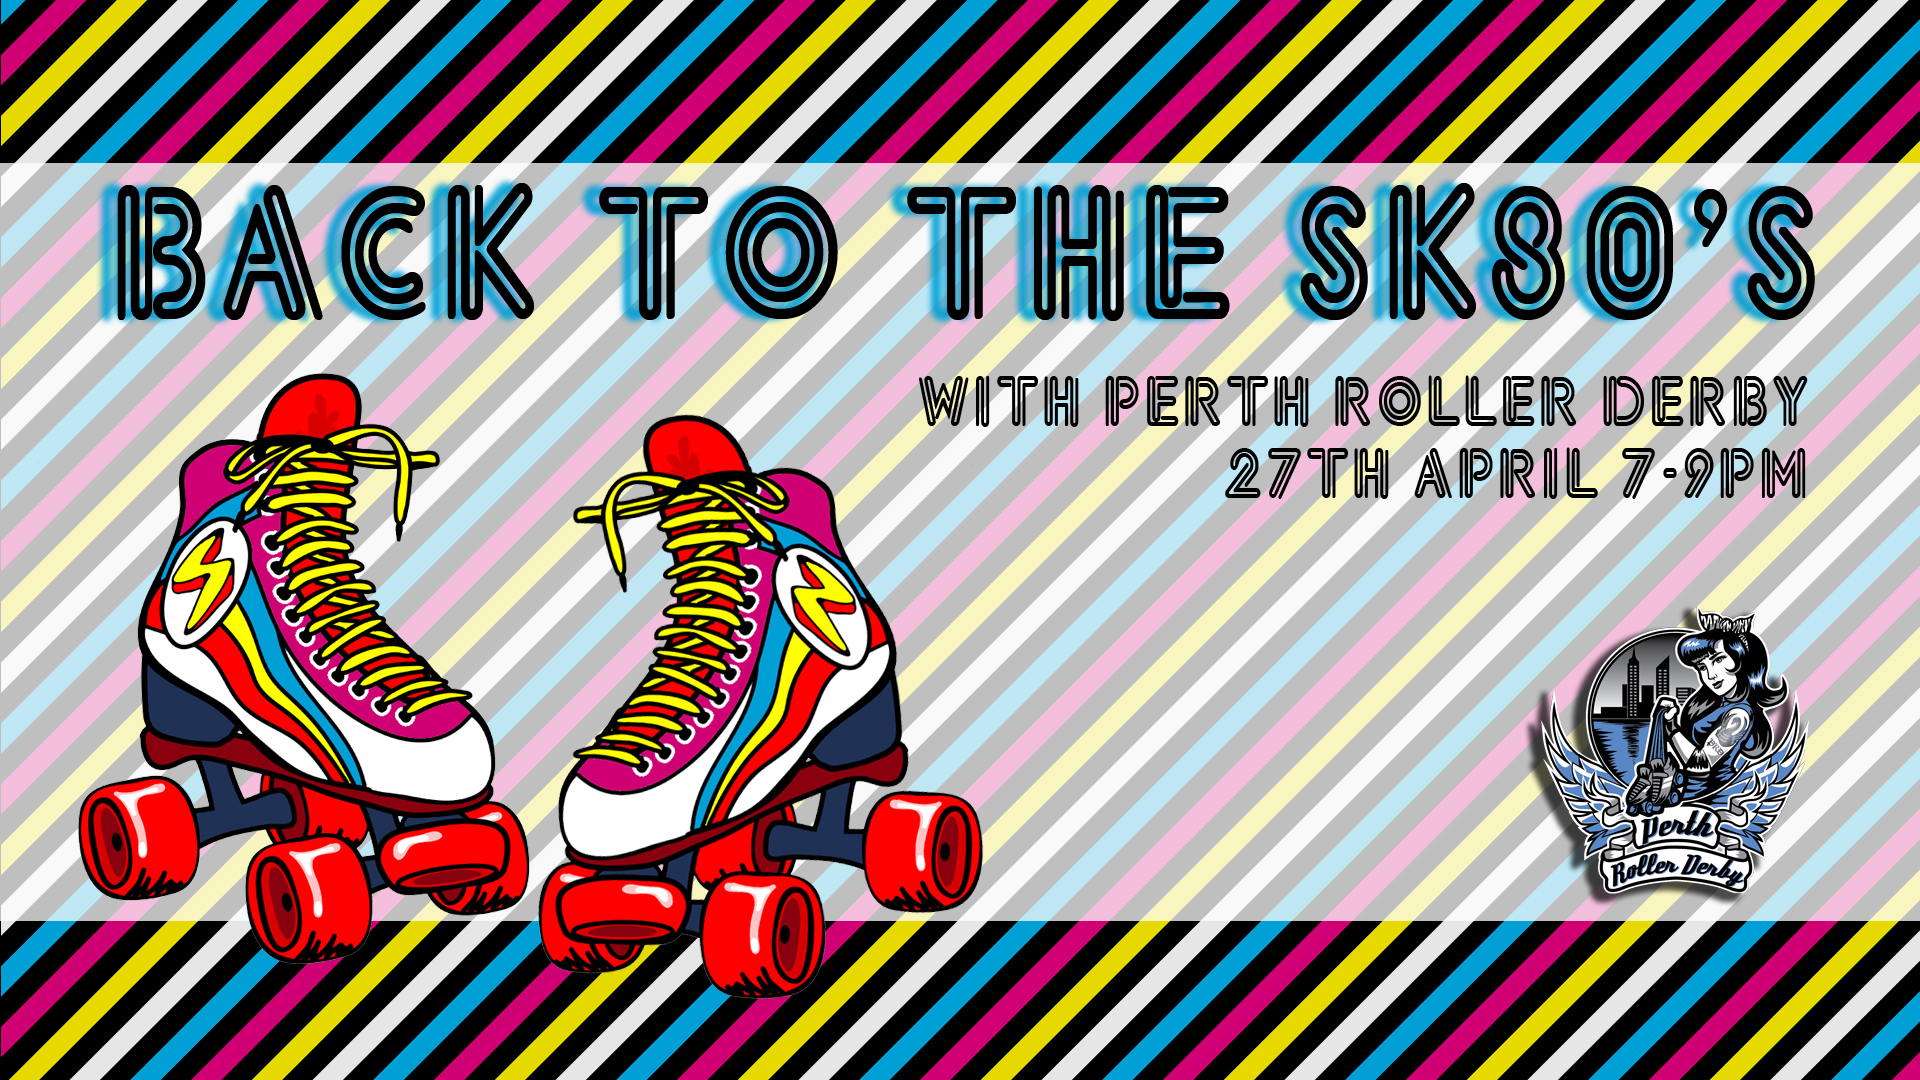 Back to the Sk80s